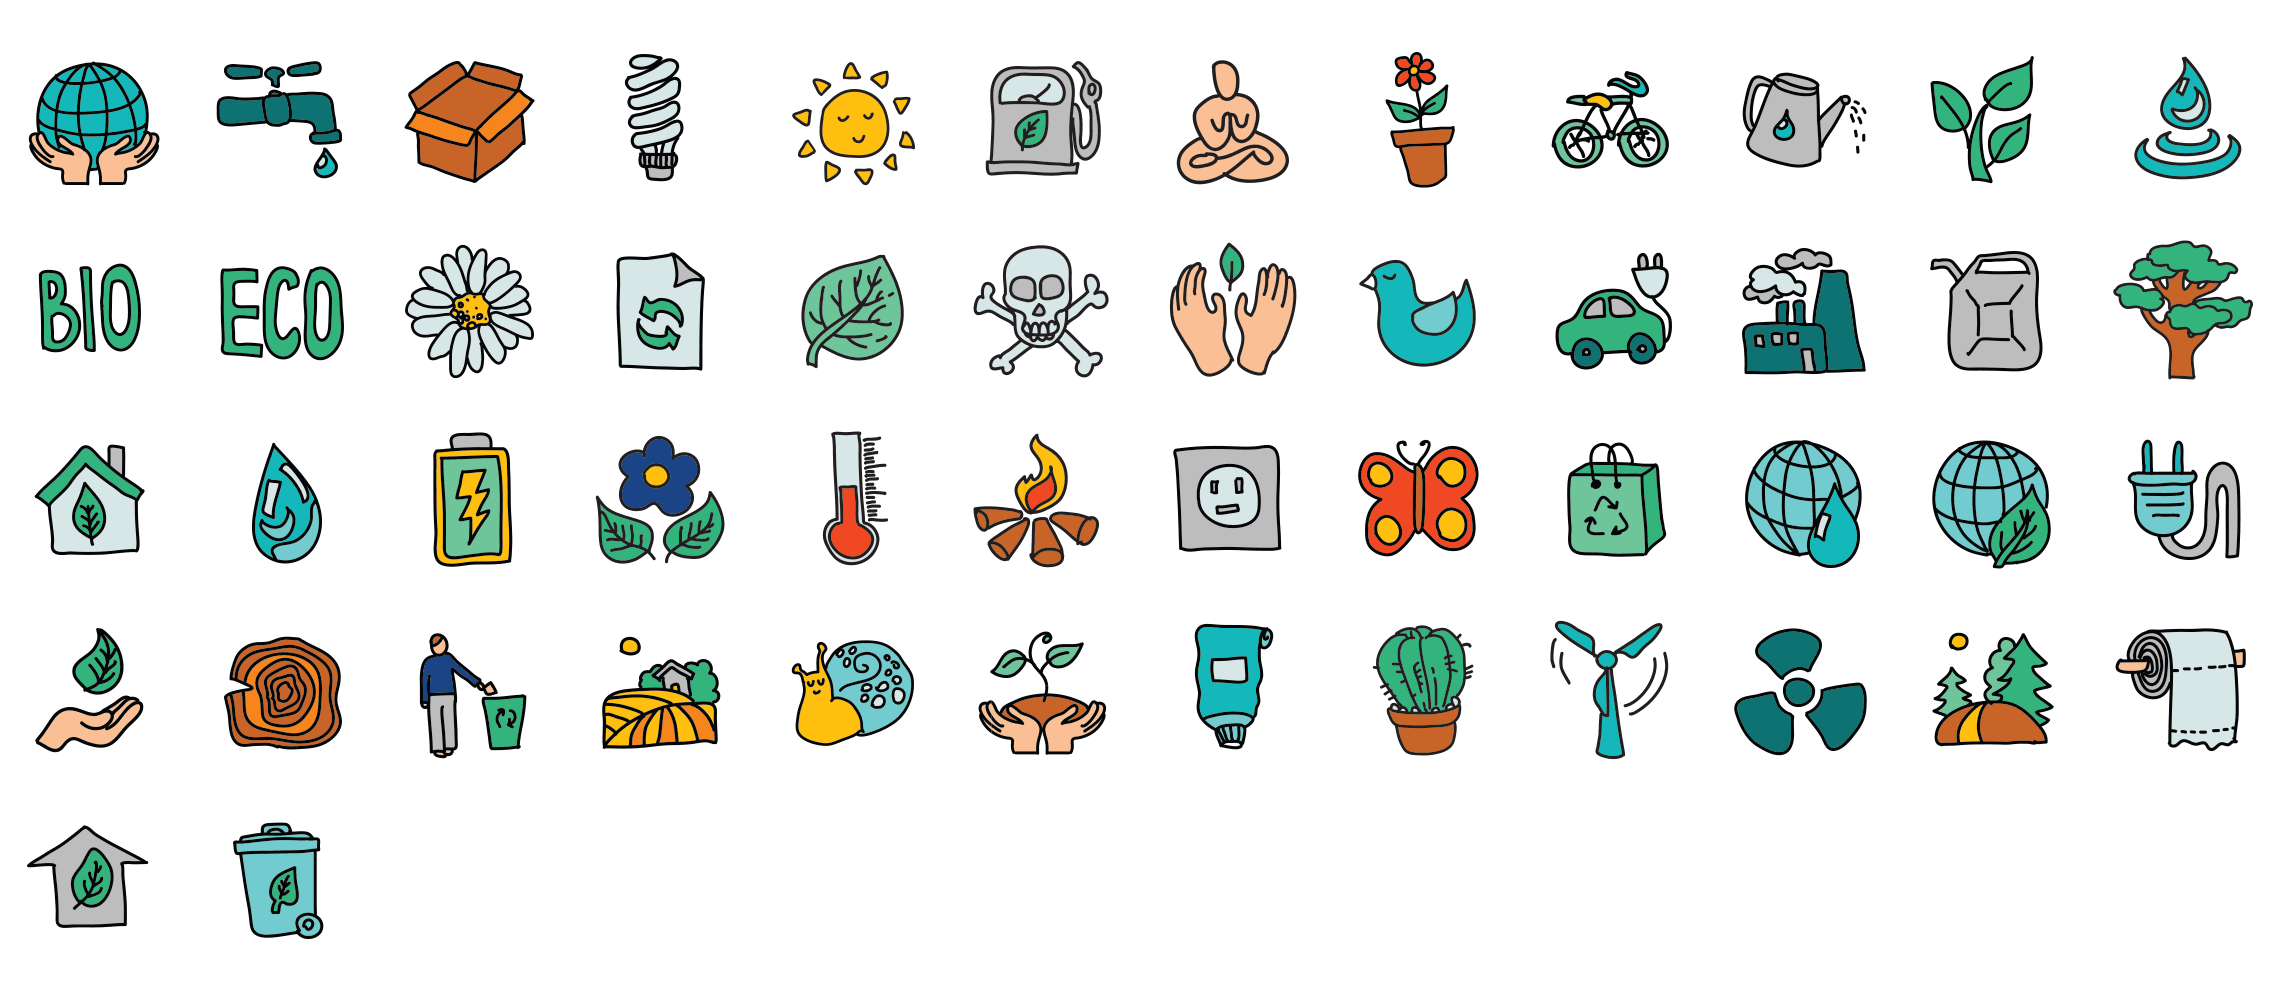 Eco-doodle-icons